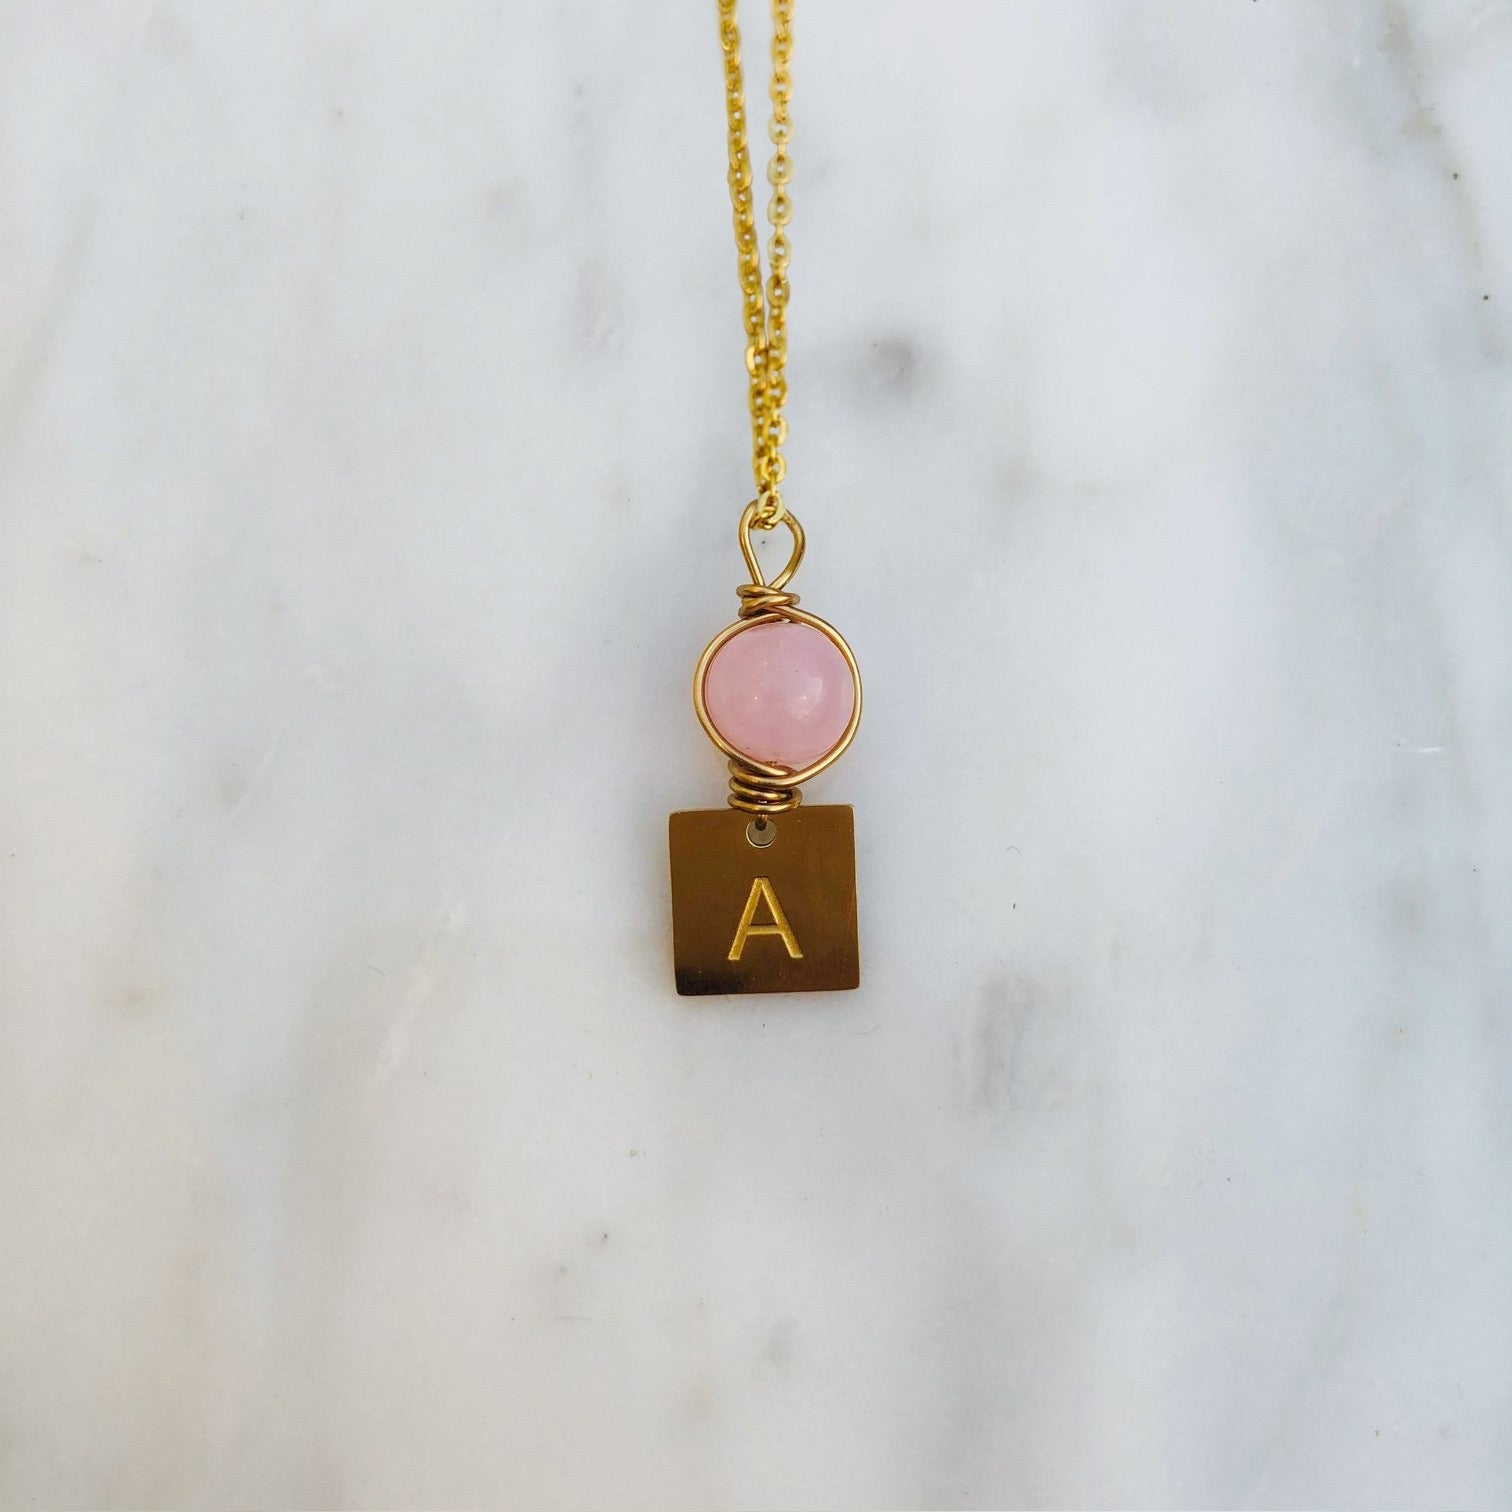 'A' initial chain necklace